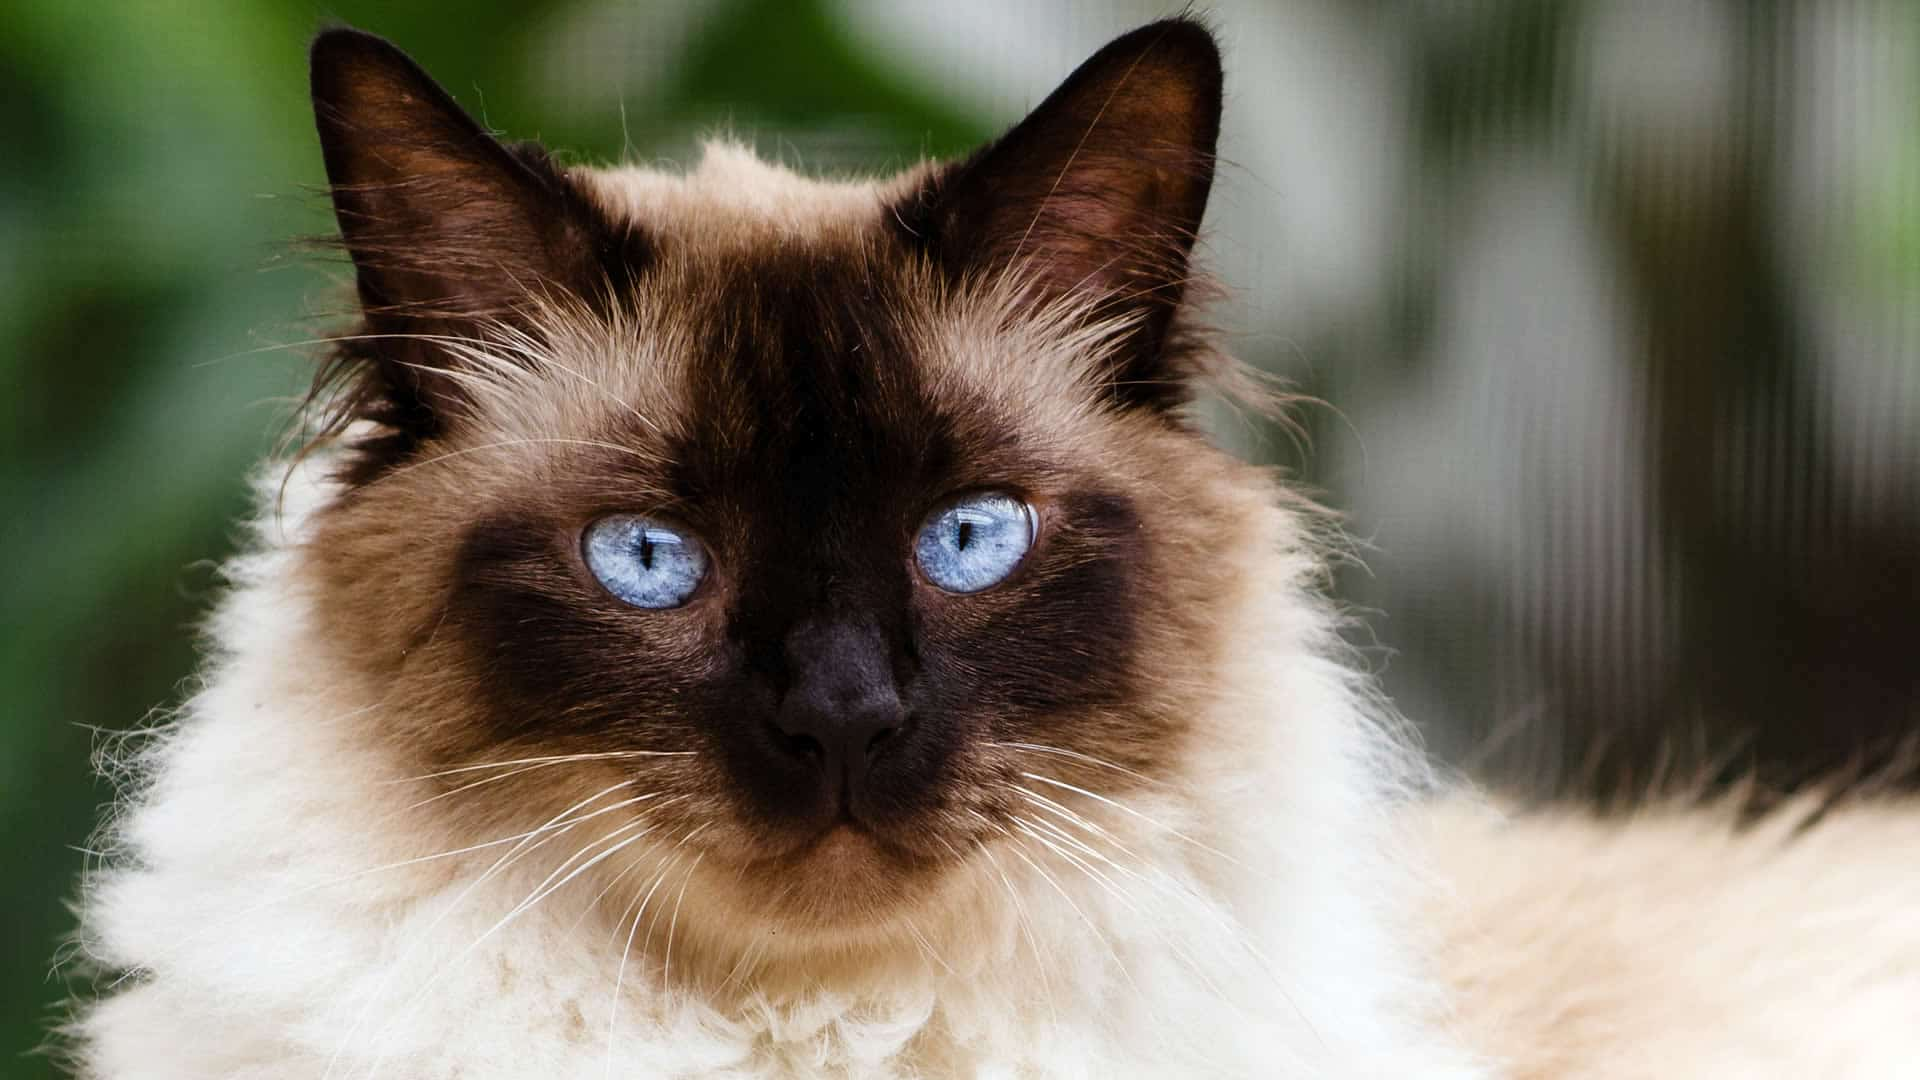 Himalayan cats are the result of crossbreeding flat-faced Persians with Siamese cats